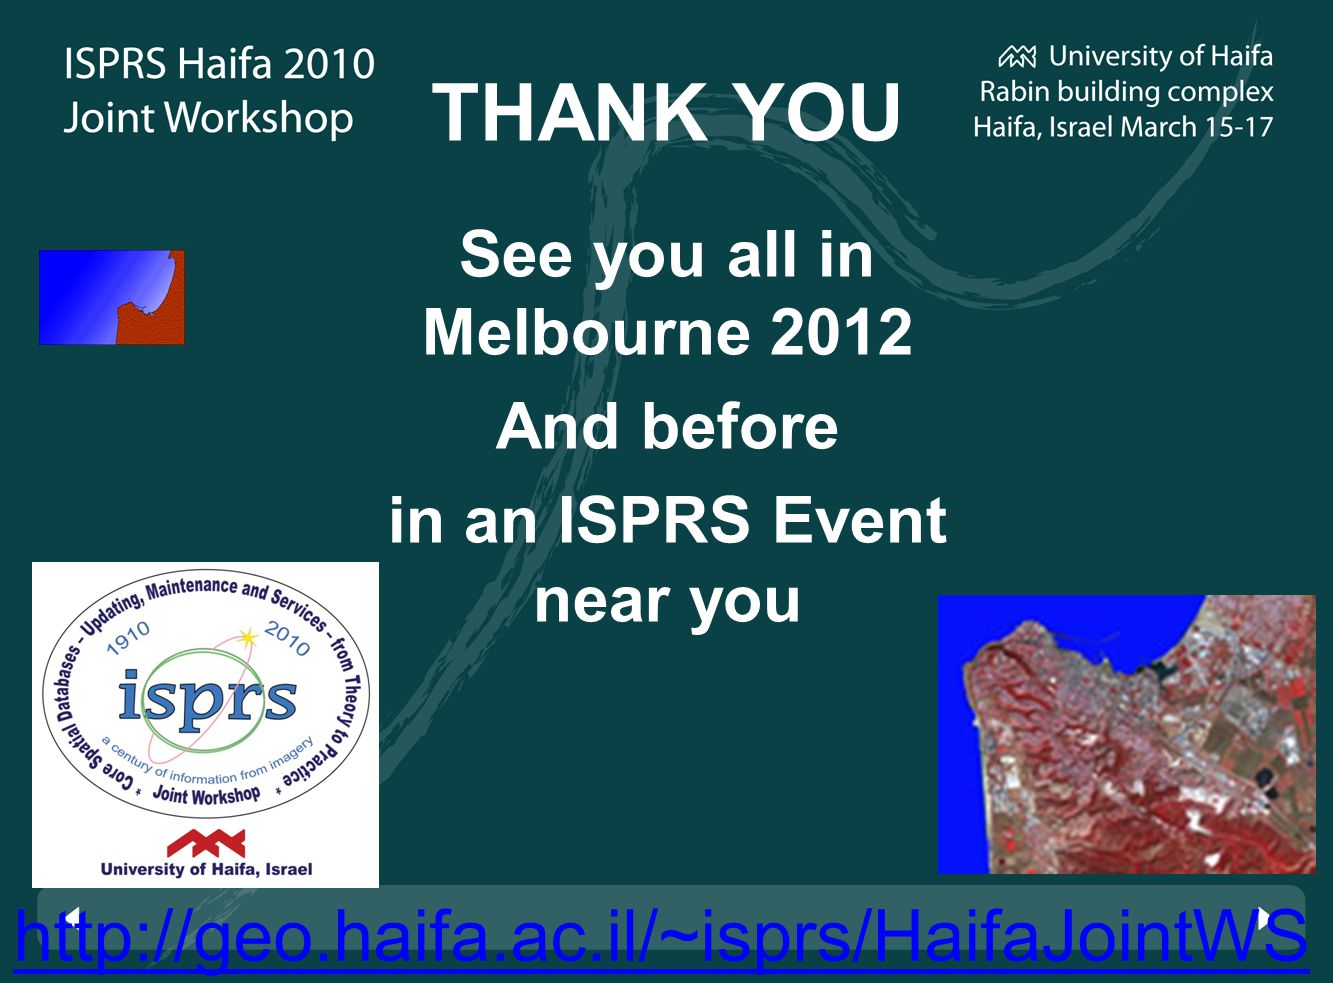 http://geo.haifa.ac.il/~isprs/HaifaJointWS THANK YOU See you all in Melbourne 2012 And before in an ISPRS Event near you